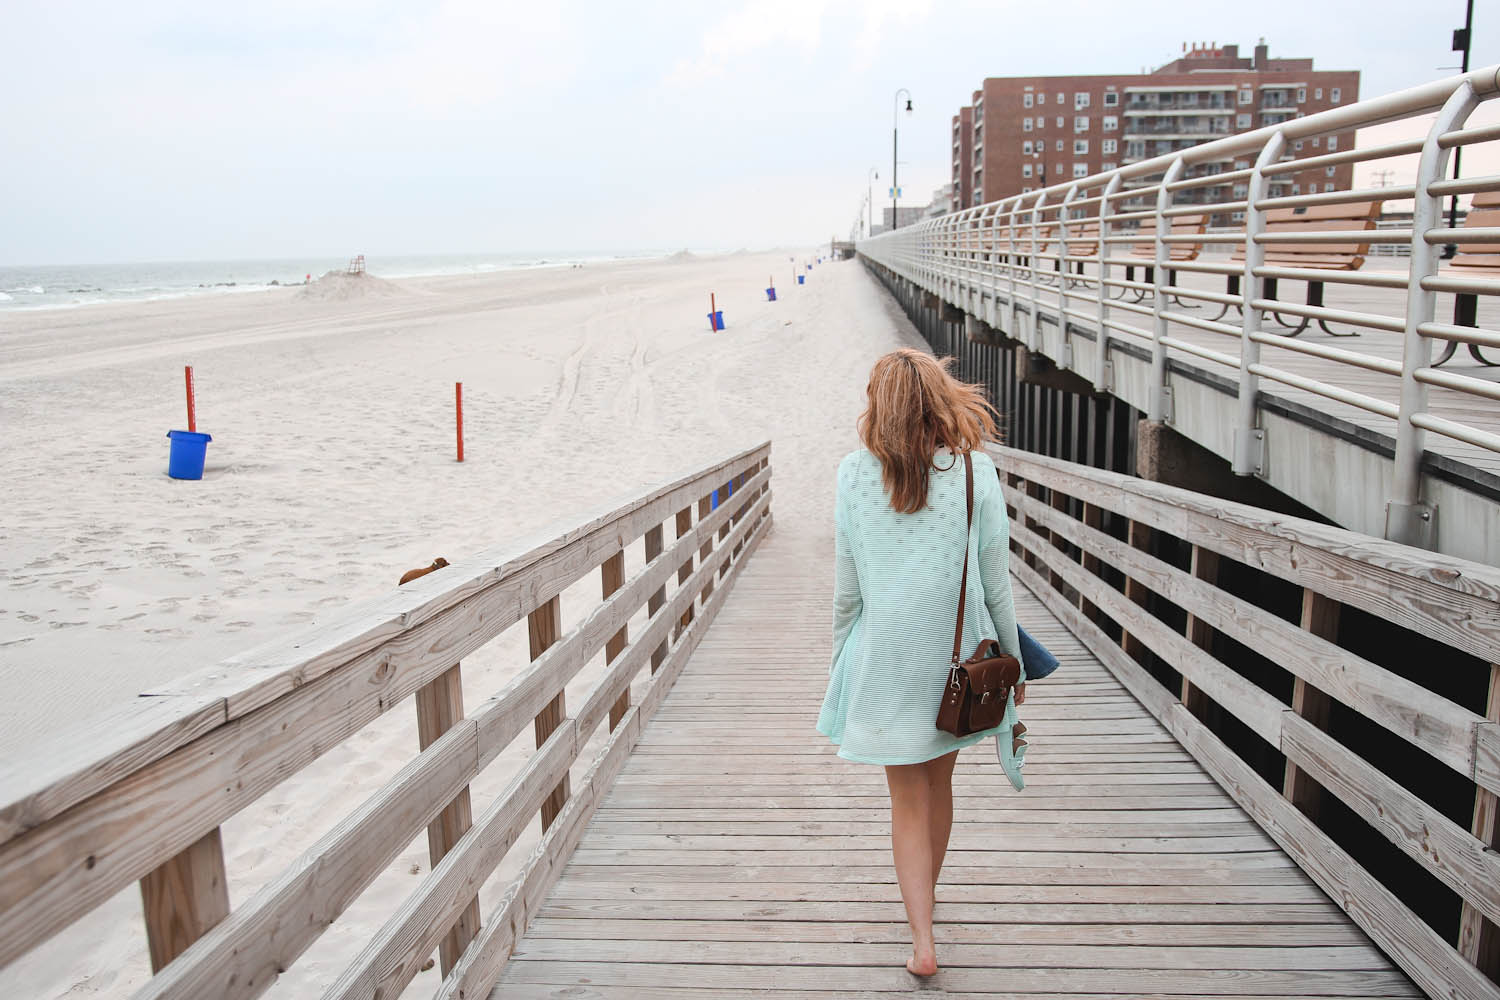 nyc vintage blog, nyc fashion blogger, nyc fashion blog, polka dot button up, long beach new york, long beach boardwalk